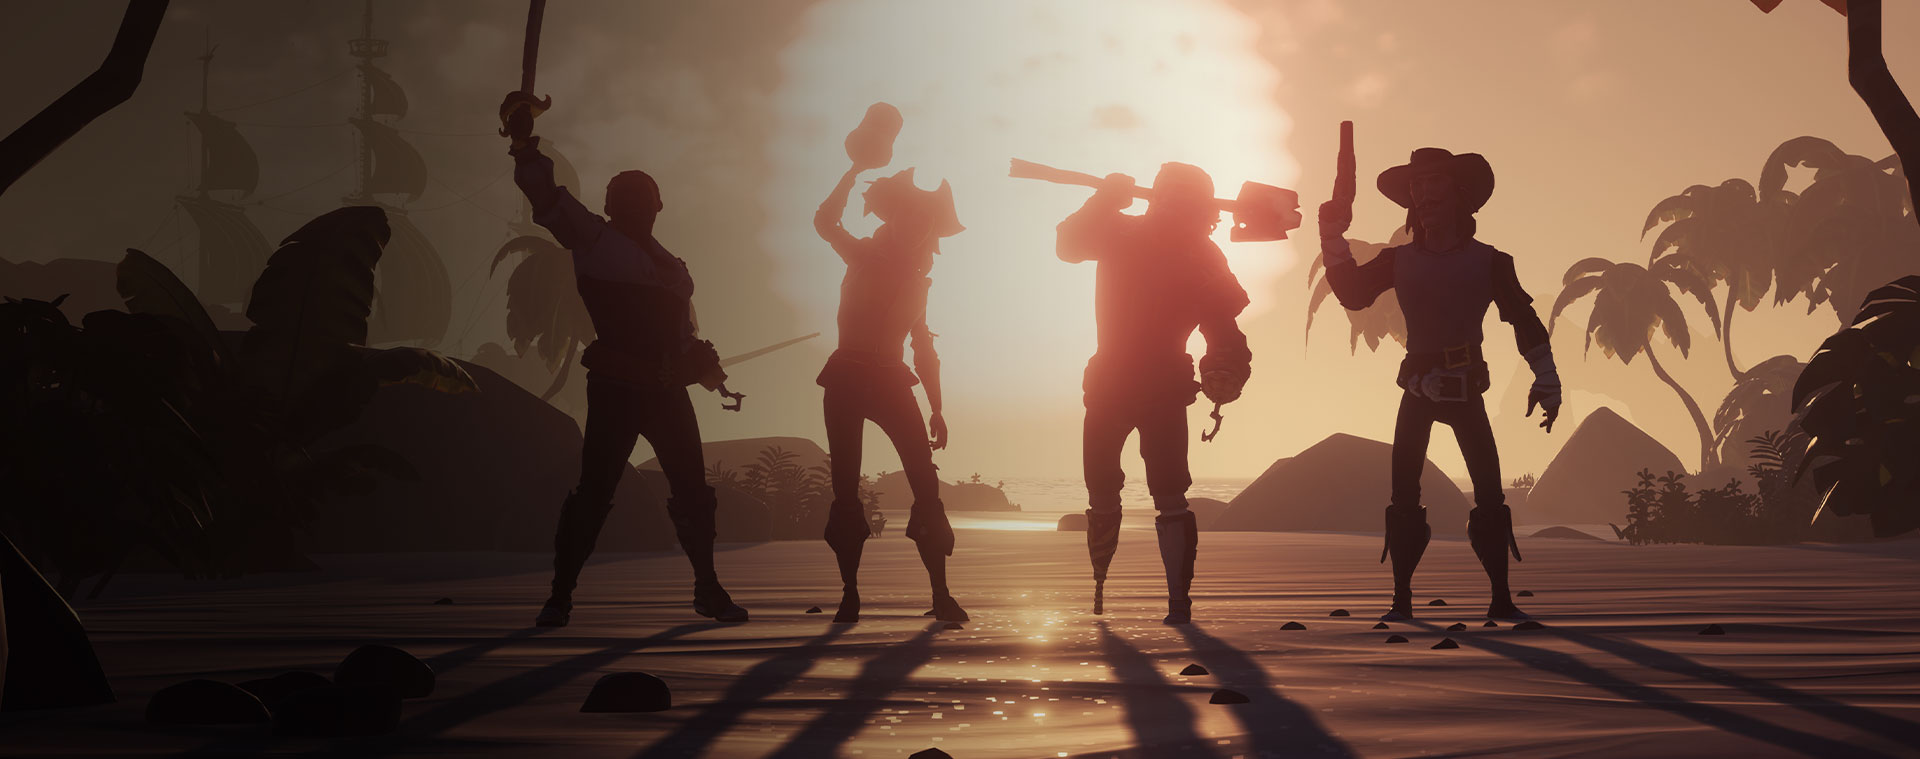 Four characters from Sea of Thieves posing in front of a sunset